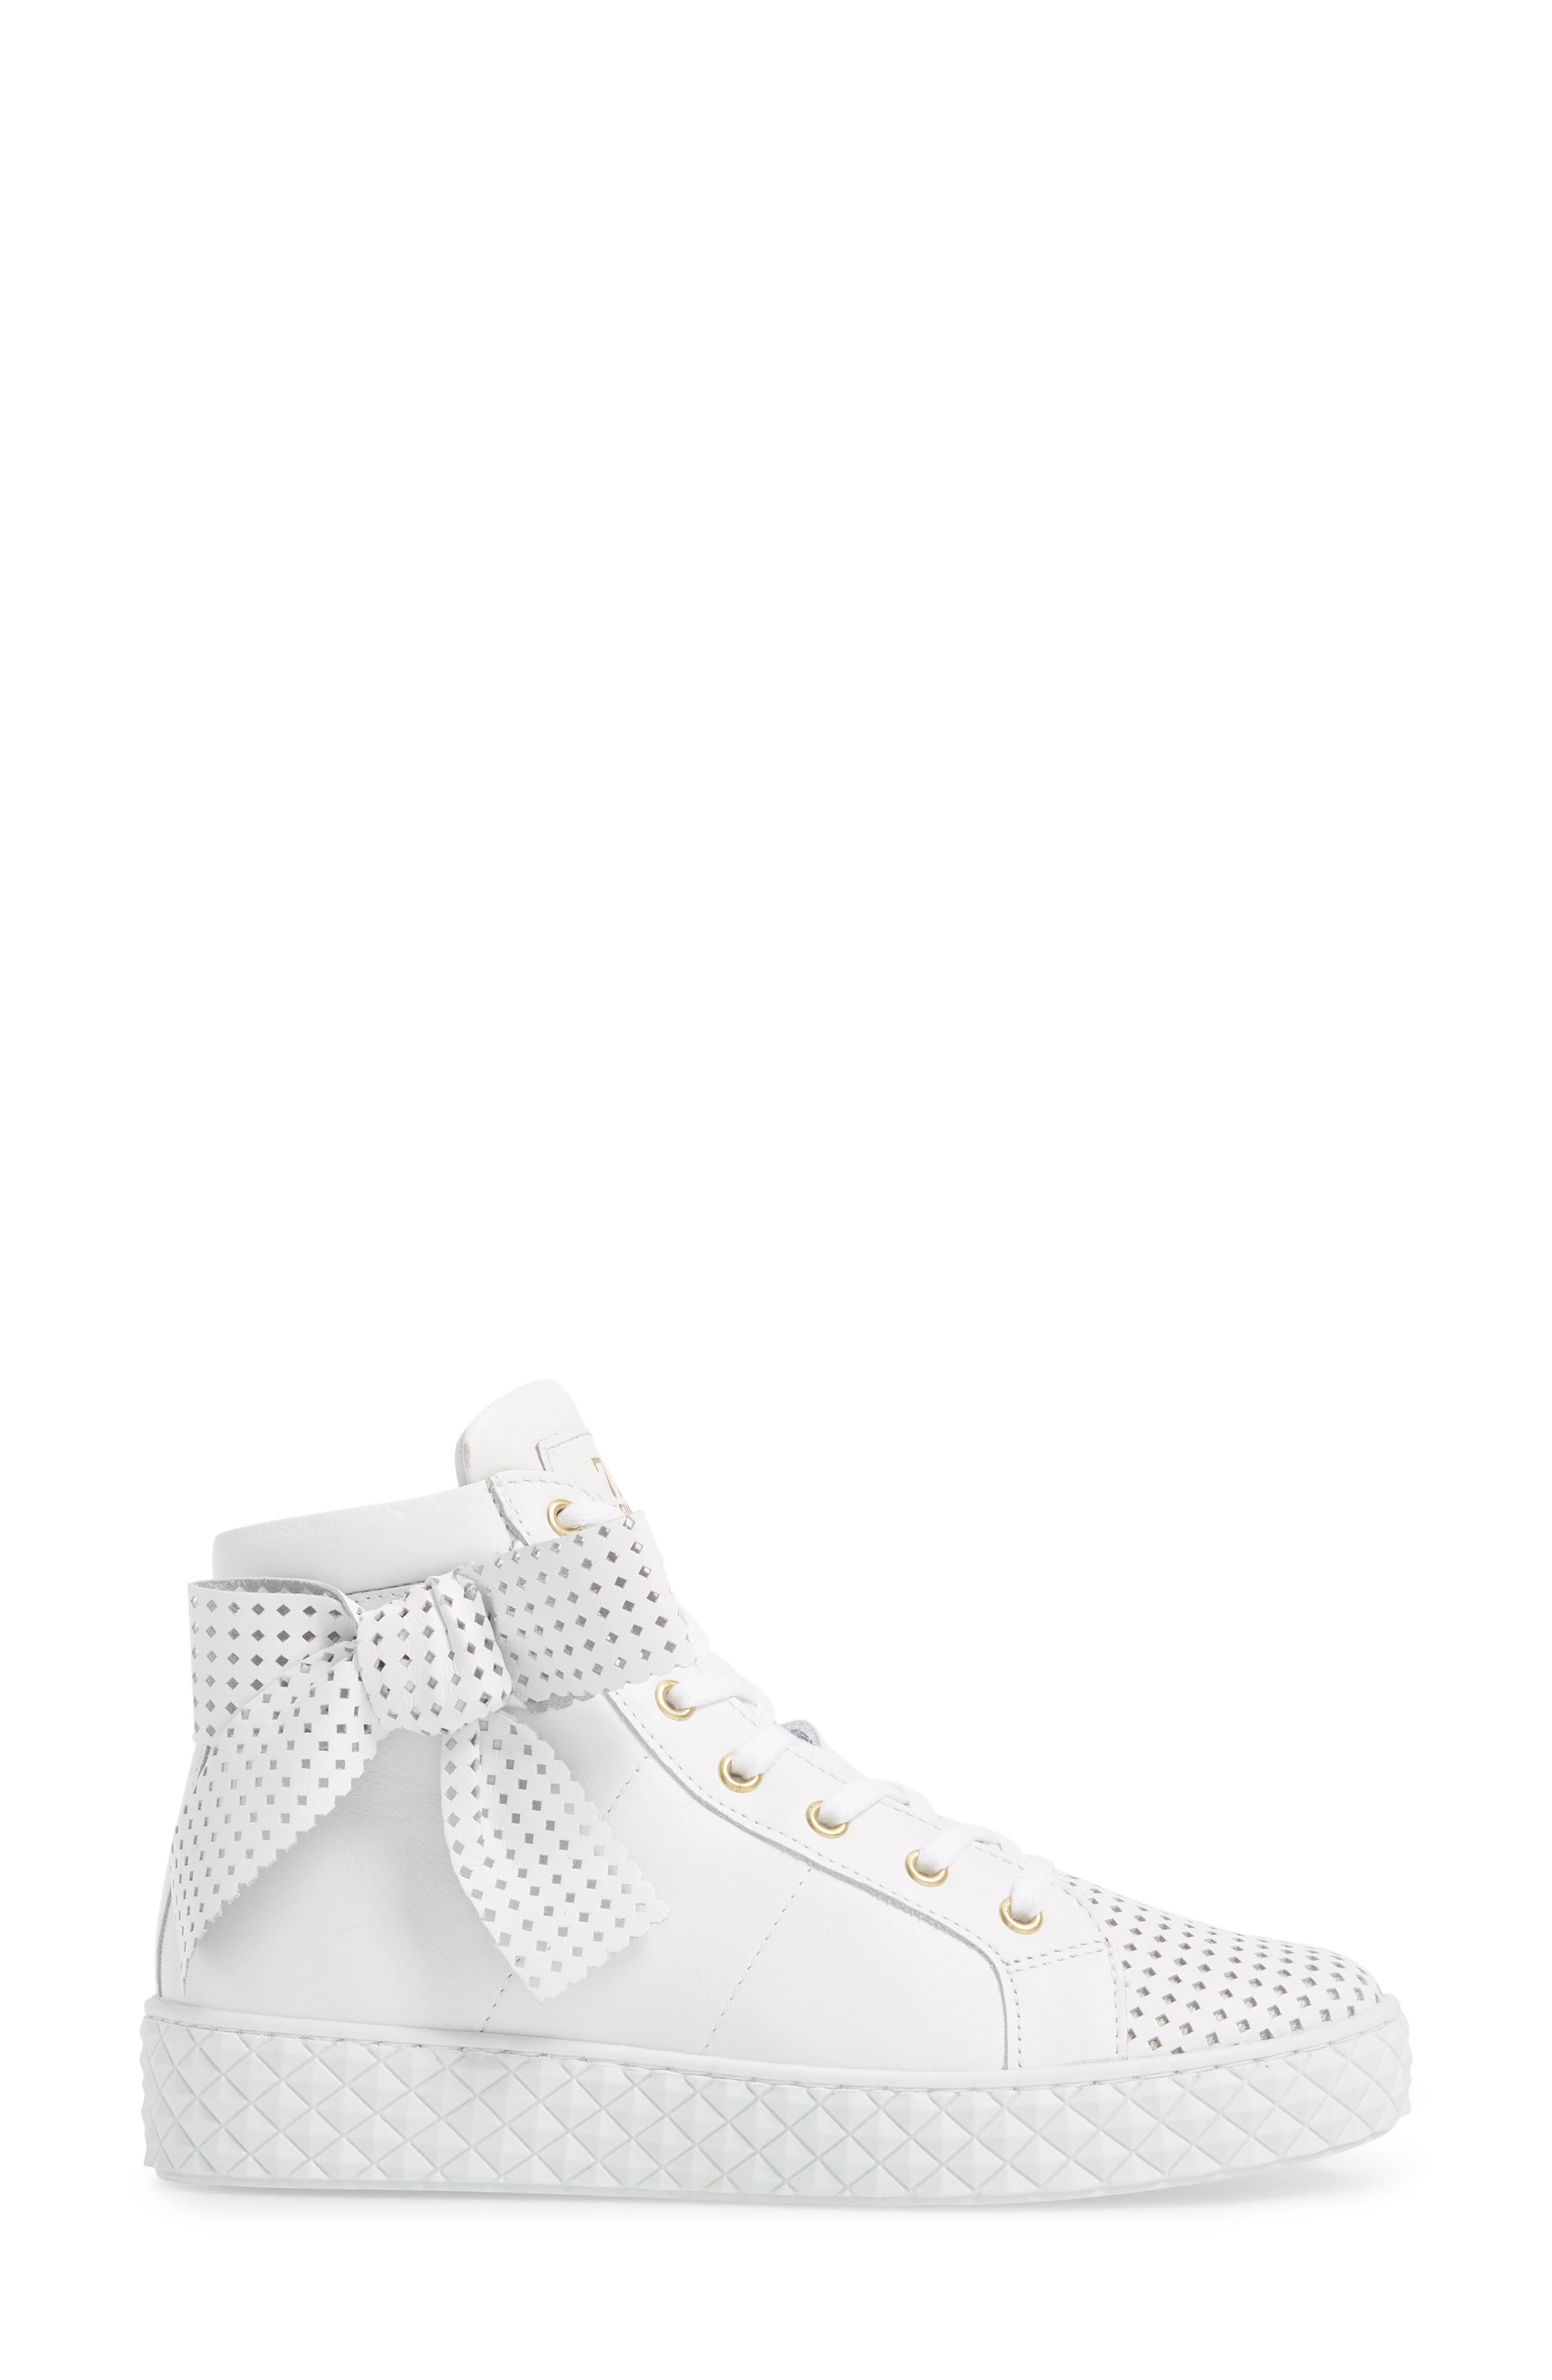 Avery High Top Sneaker,                             Alternate thumbnail 3, color,                             WHITE LEATHER